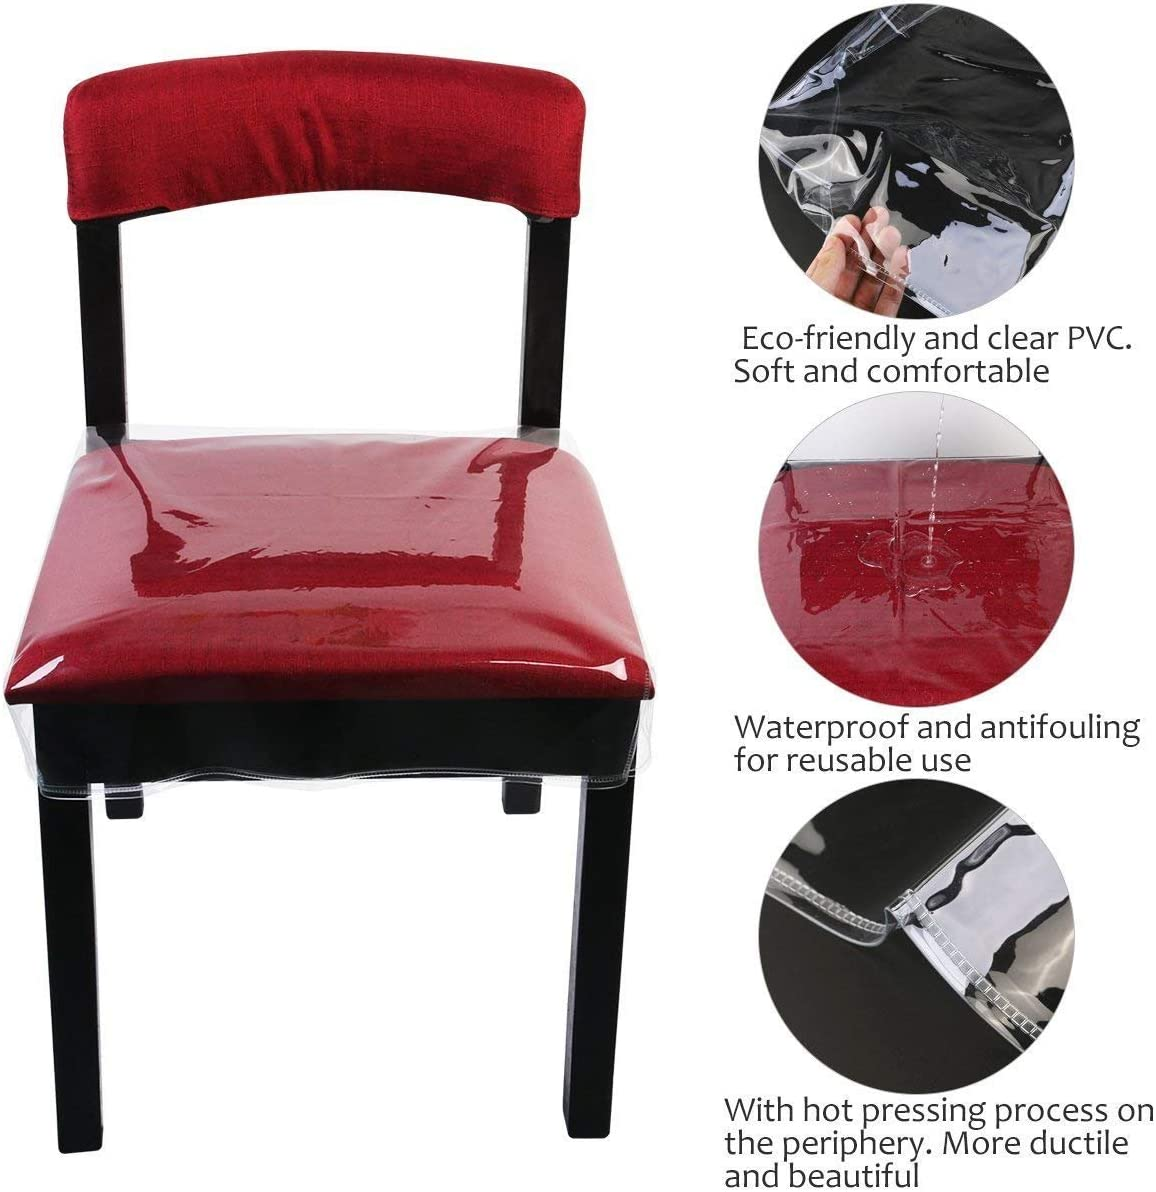 Chair Protector Waterproof PVC Dining Chair Covers Removable, 48x45.7x10cm, 2 Pack